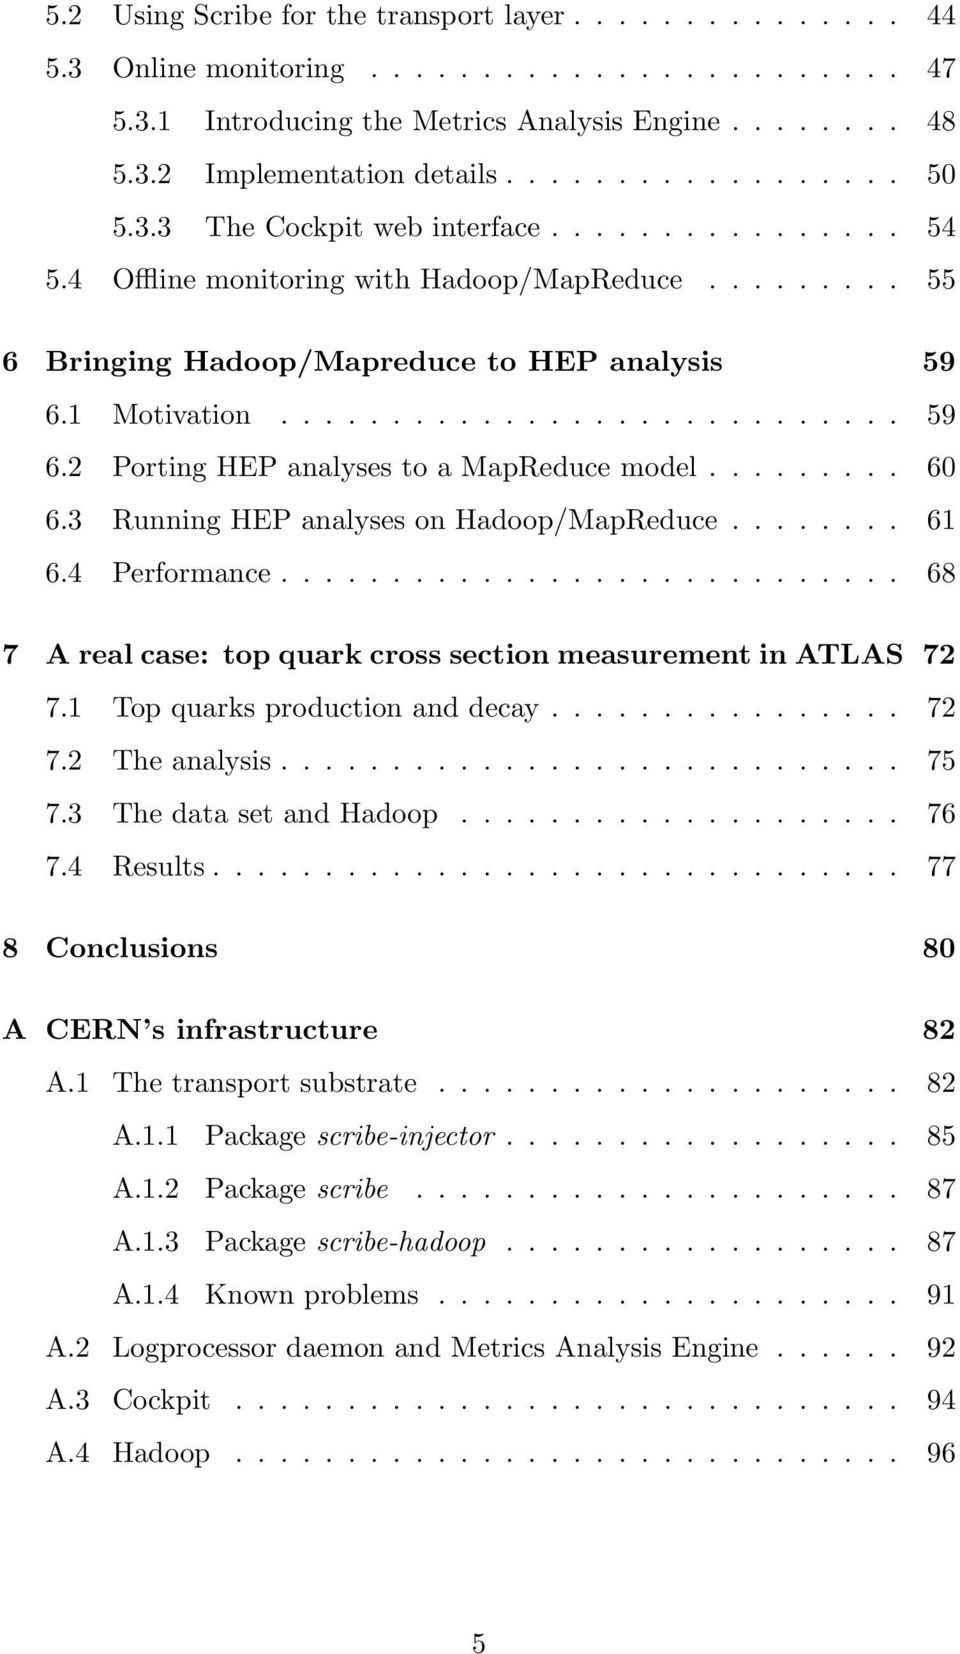 ........ 60 6.3 Running HEP analyses on Hadoop/MapReduce........ 61 6.4 Performance............................ 68 7 A real case: top quark cross section measurement in ATLAS 72 7.